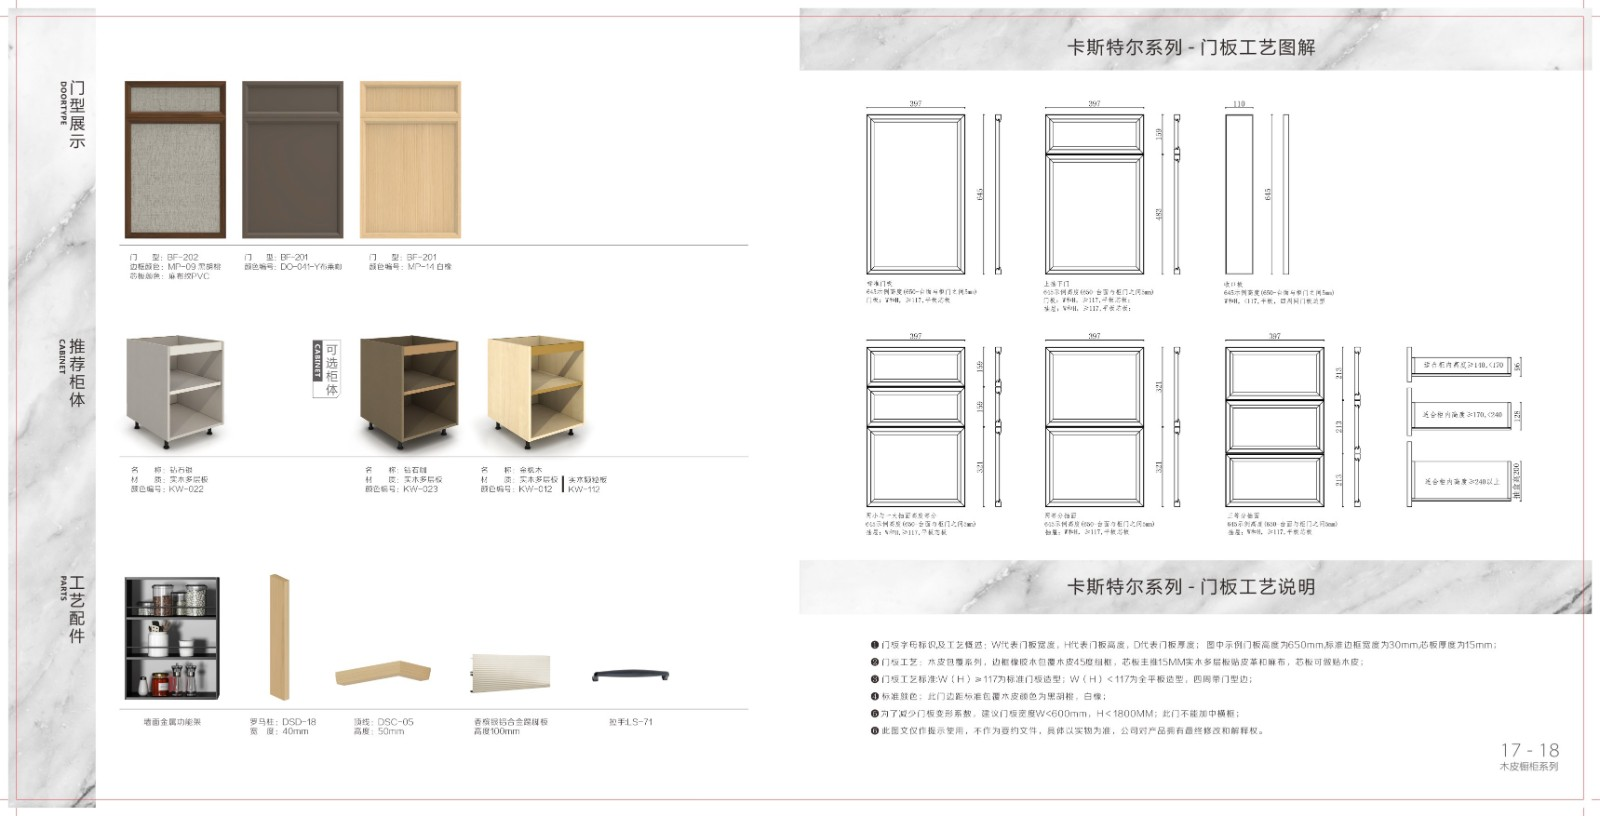 Wholesale bespoke kitchen cabinet sdk05 Supply fivestar hotel-7